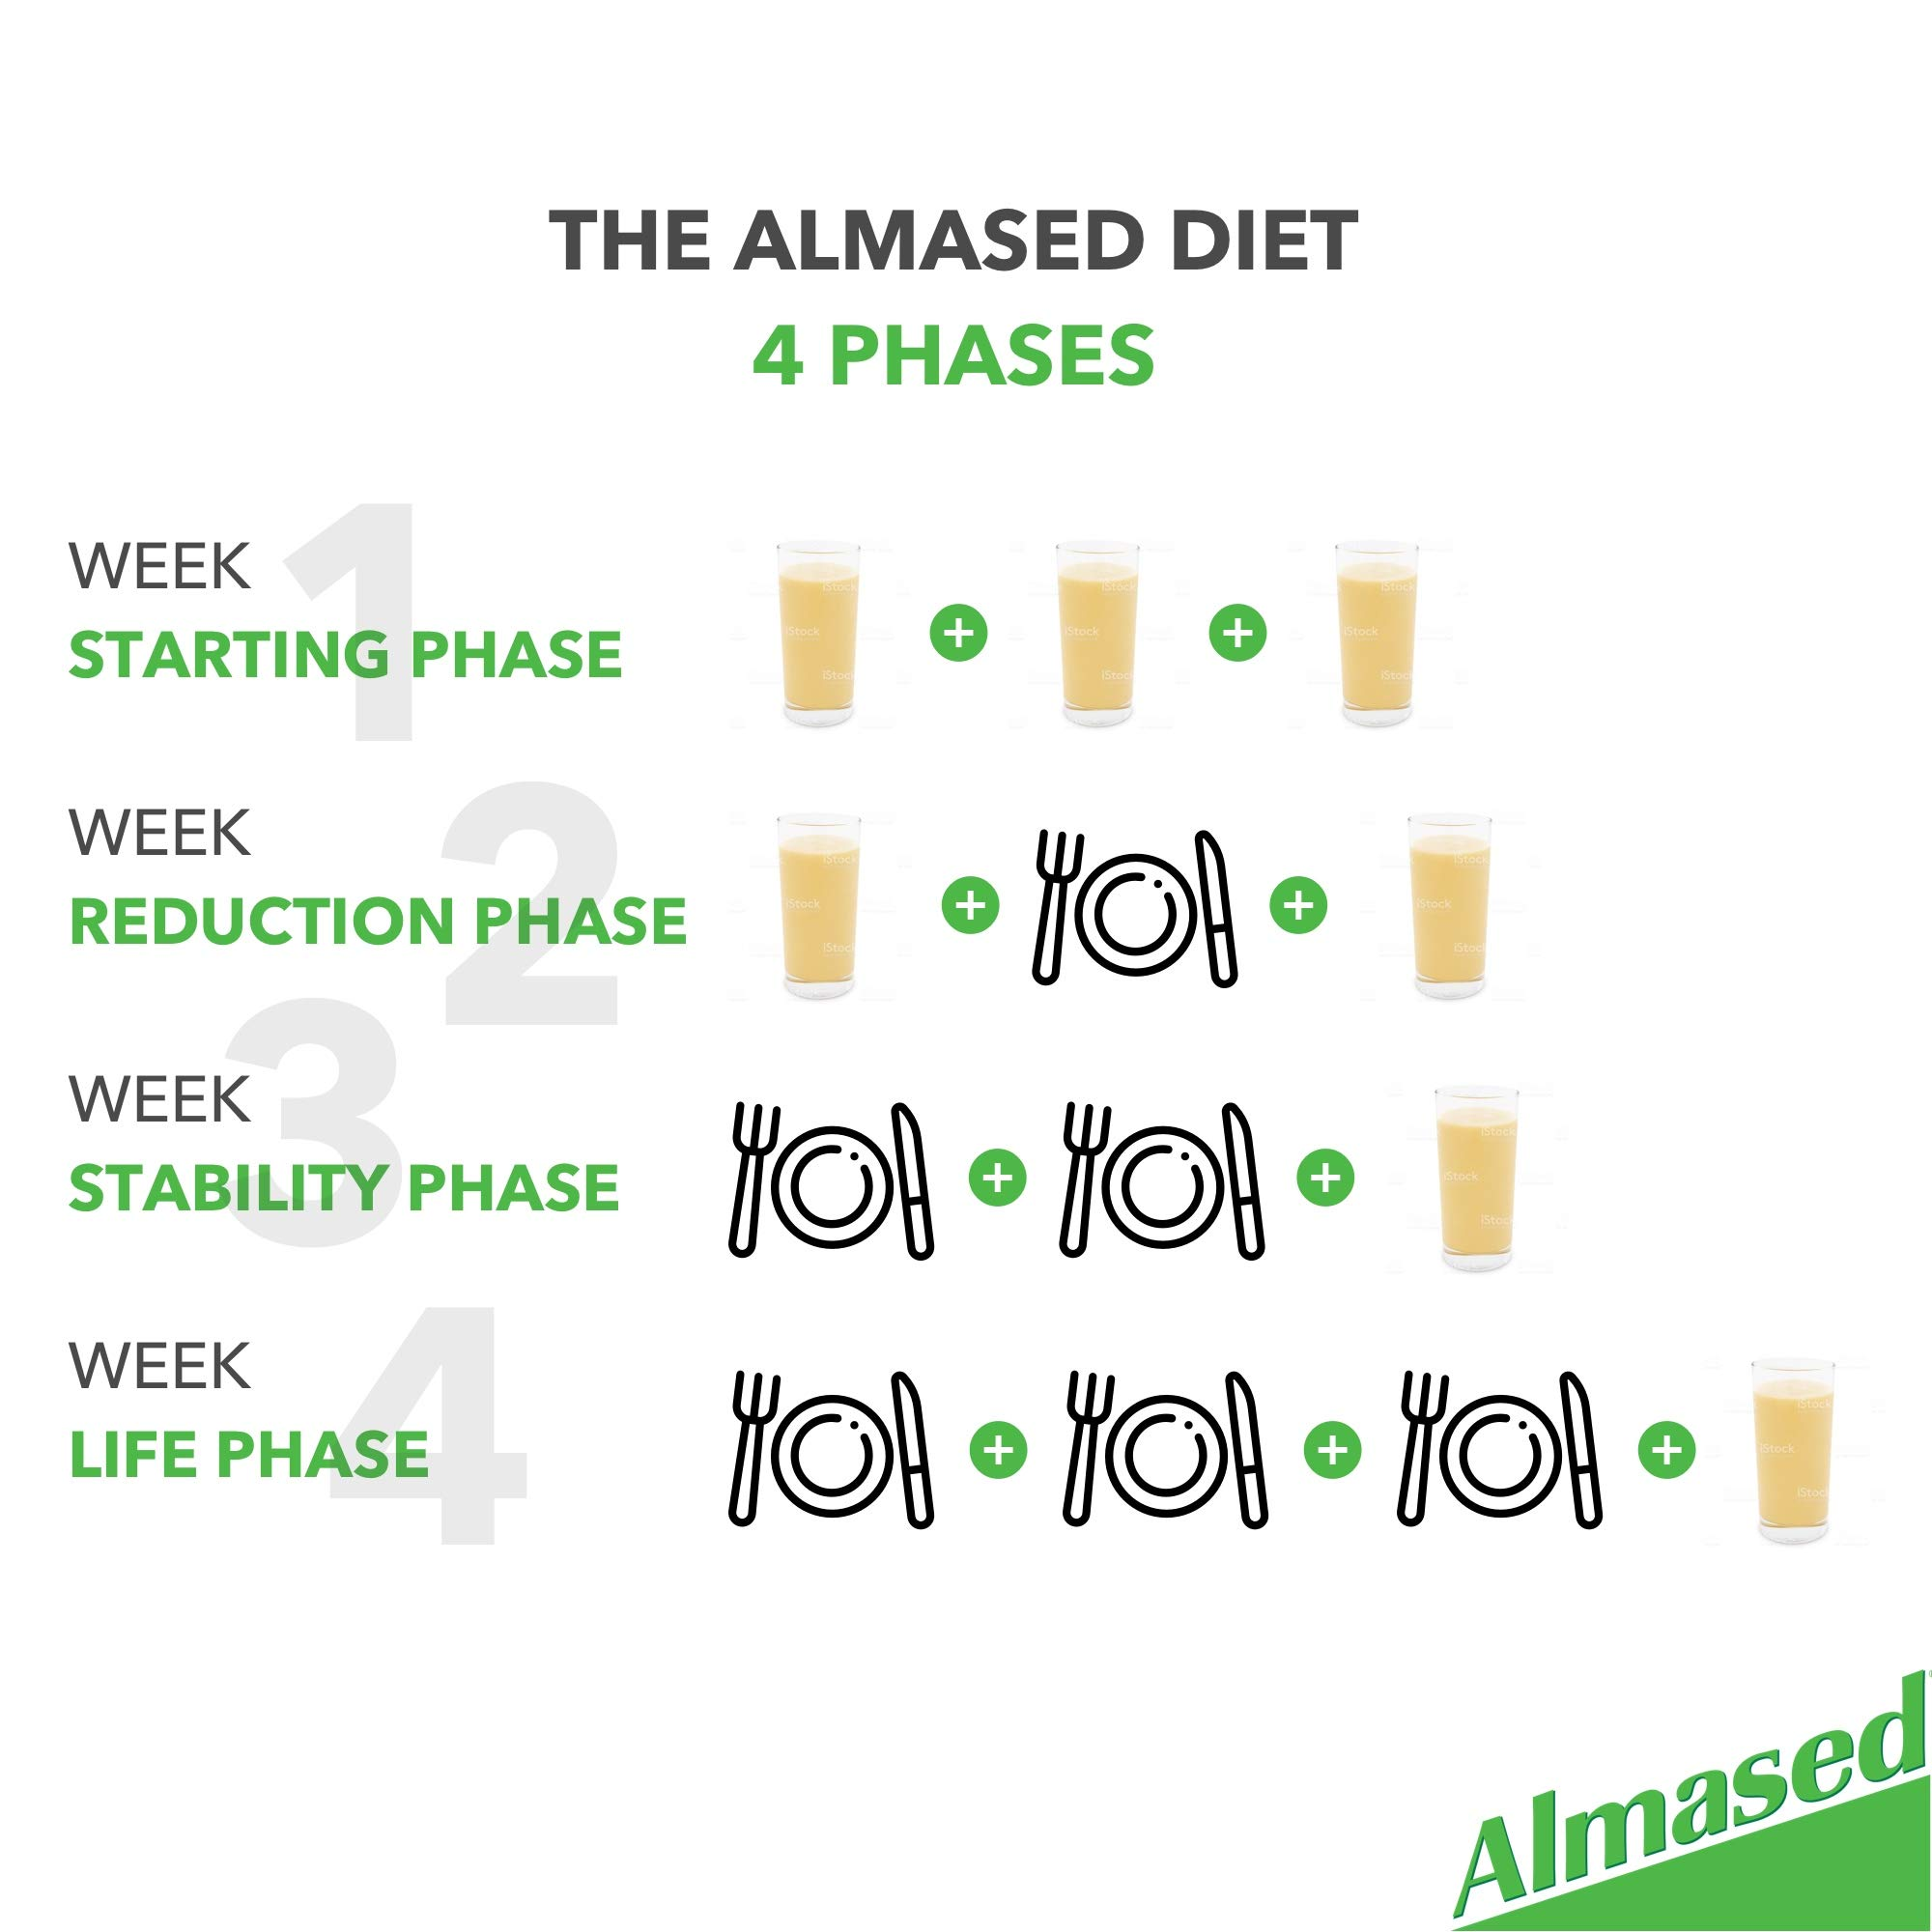 Almased Meal Replacement Shake (3 Pack) with Bonus Bamboo Spoon - 17.6 oz Powder - High Protein Weight Loss Drink, Fat Metabolism Booster - Vegetarian, Gluten Free - 30 Total Servings by Almased (Image #8)